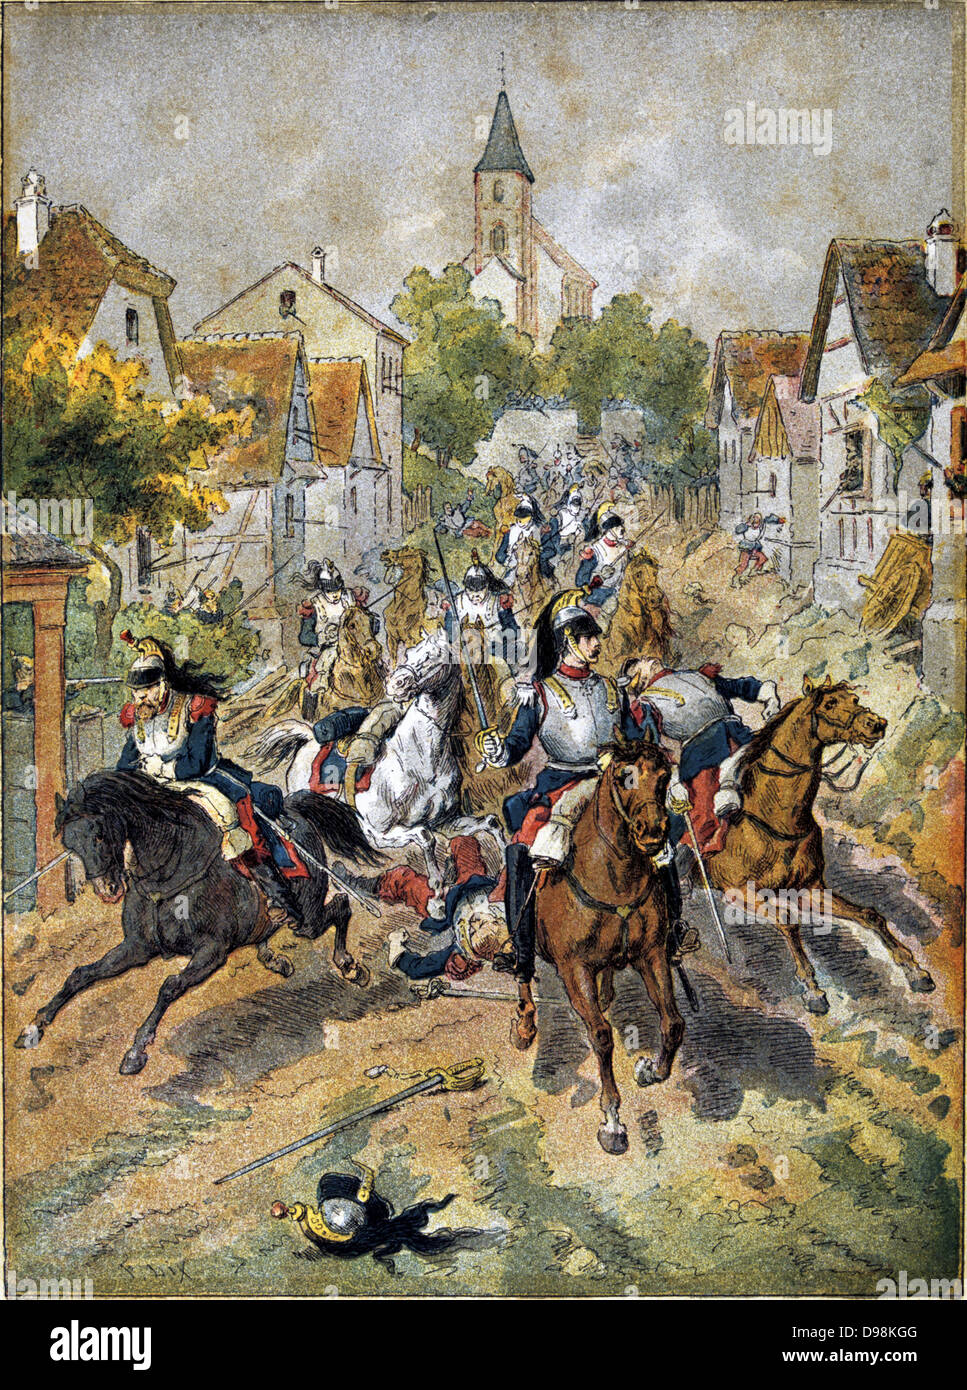 Franco-Prussian War 1870-1871: Battle of Reichshoffen also called Battle of Worth, 5 August 1870. French Cuirassiers Stock Photo